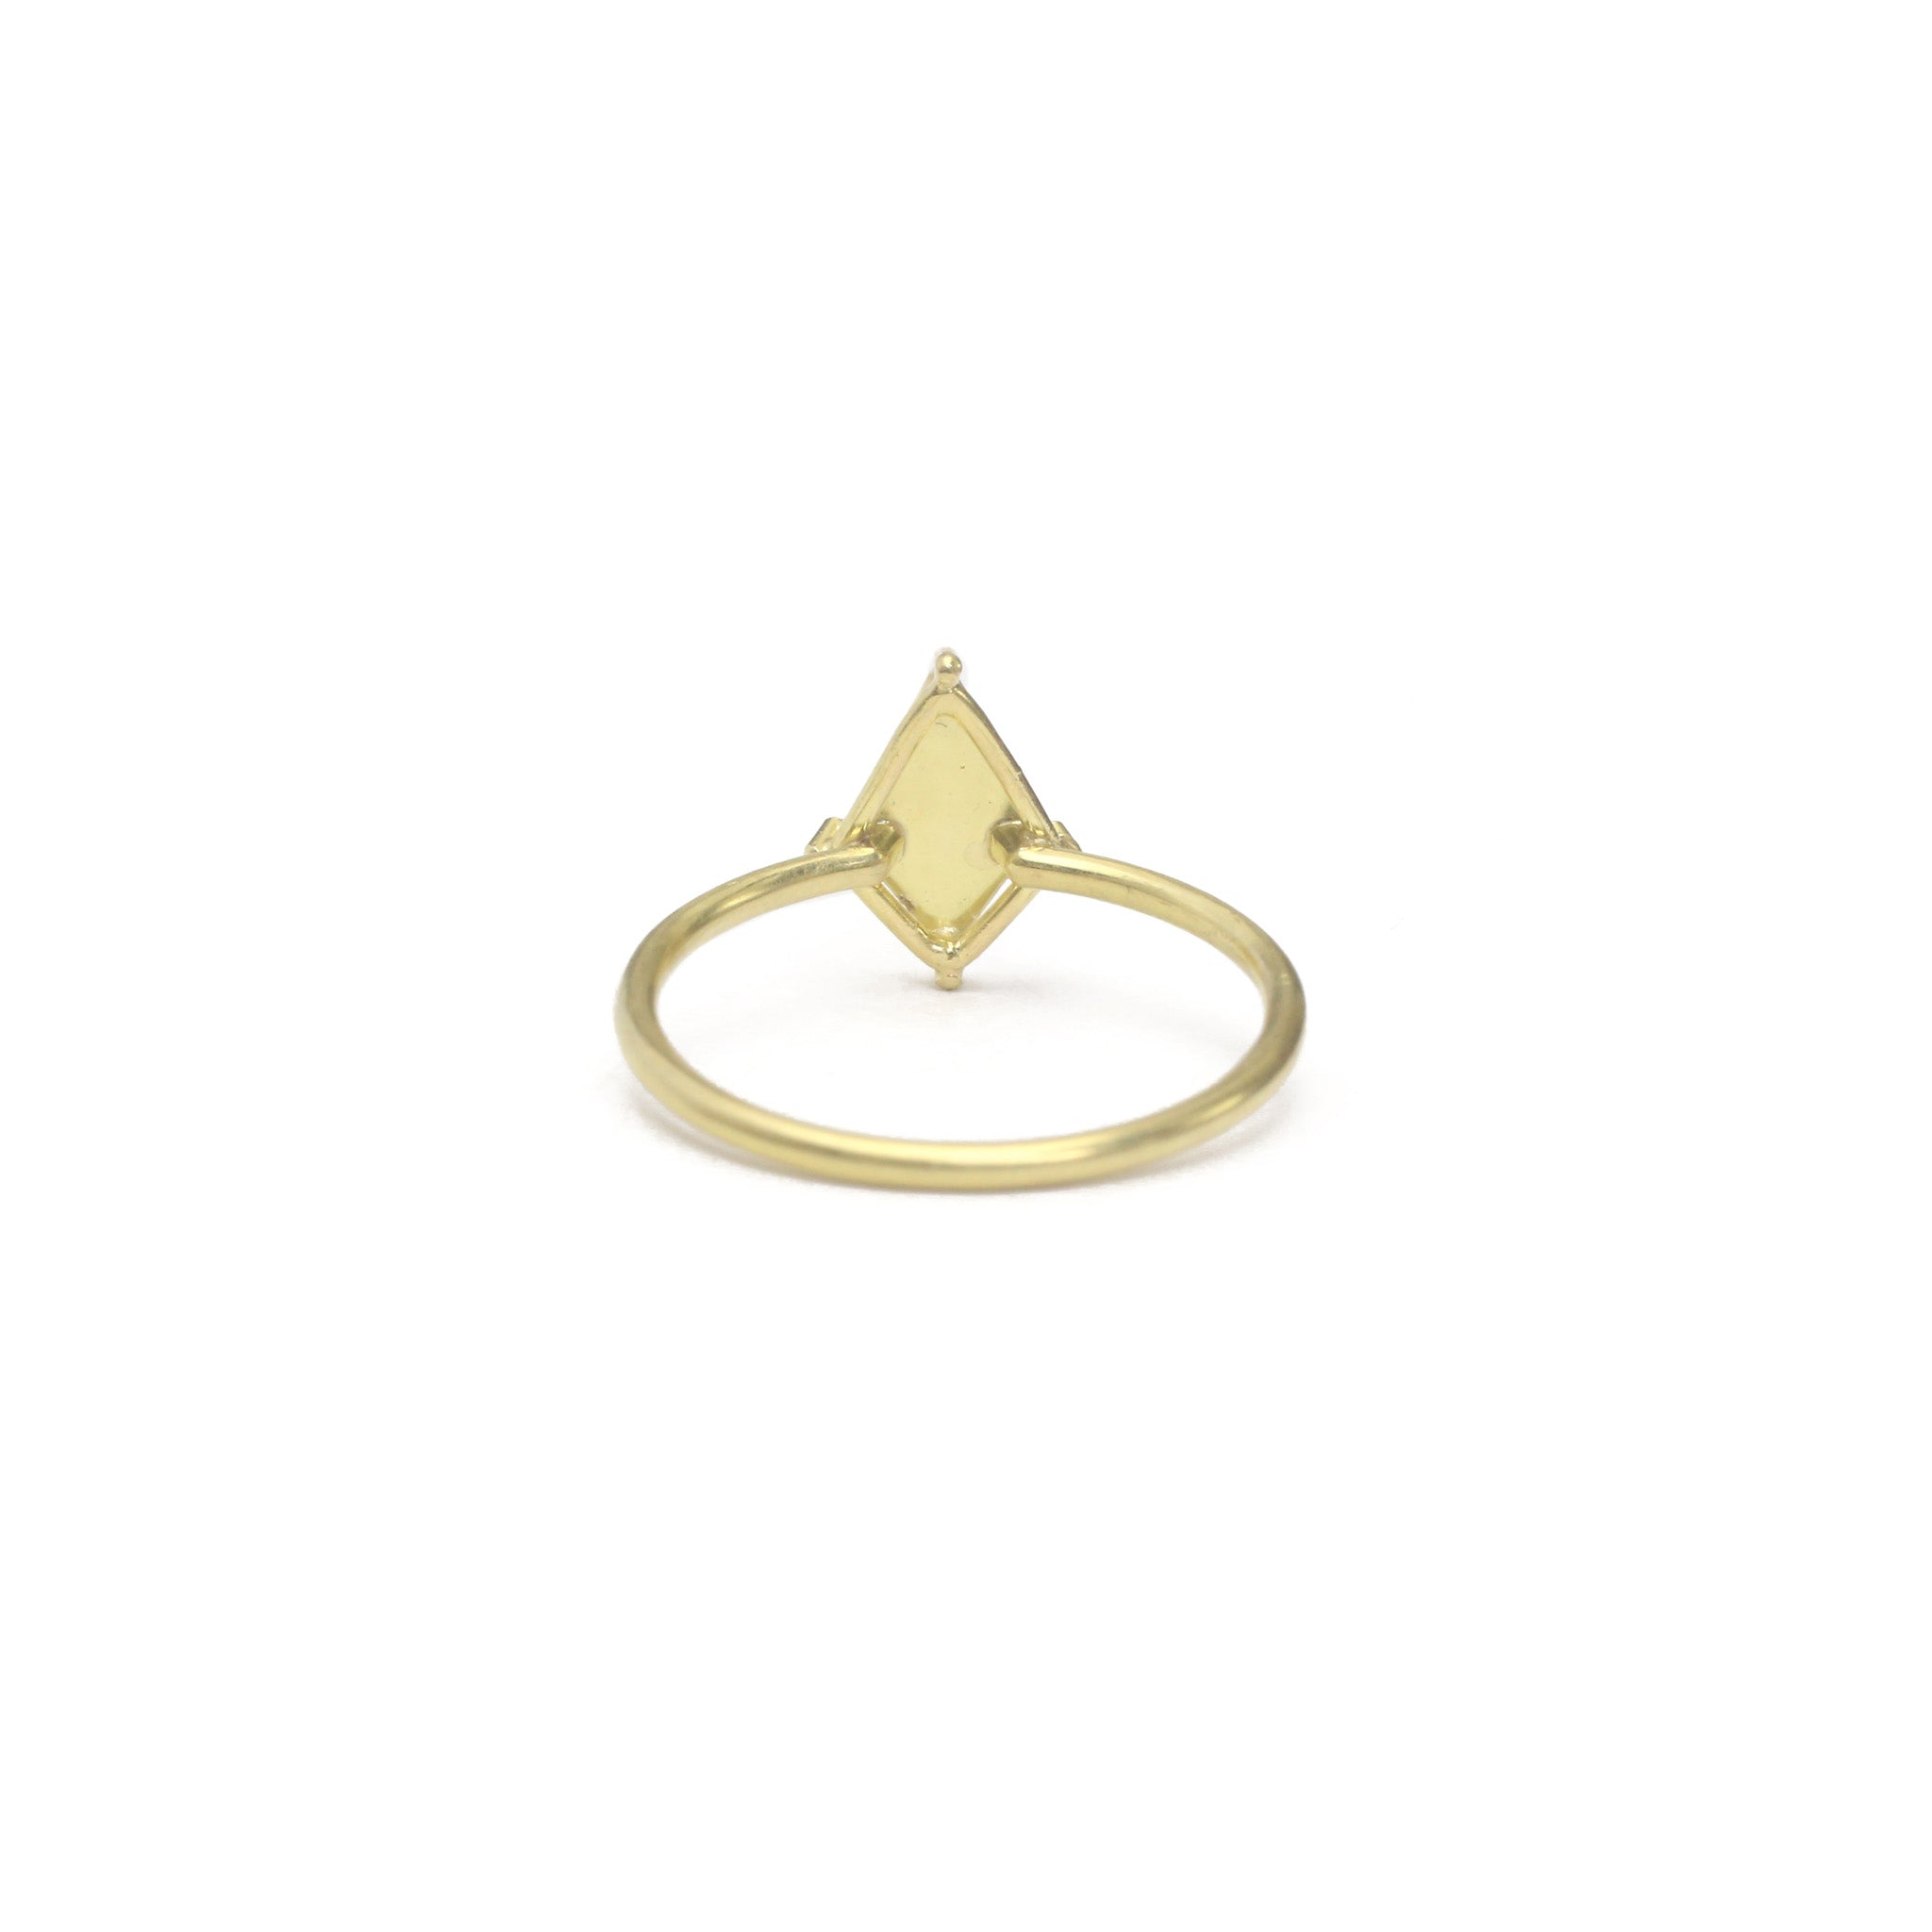 gallery products melanie katsalidis kite eight diamond ring neo halo elevate pieces cuts of